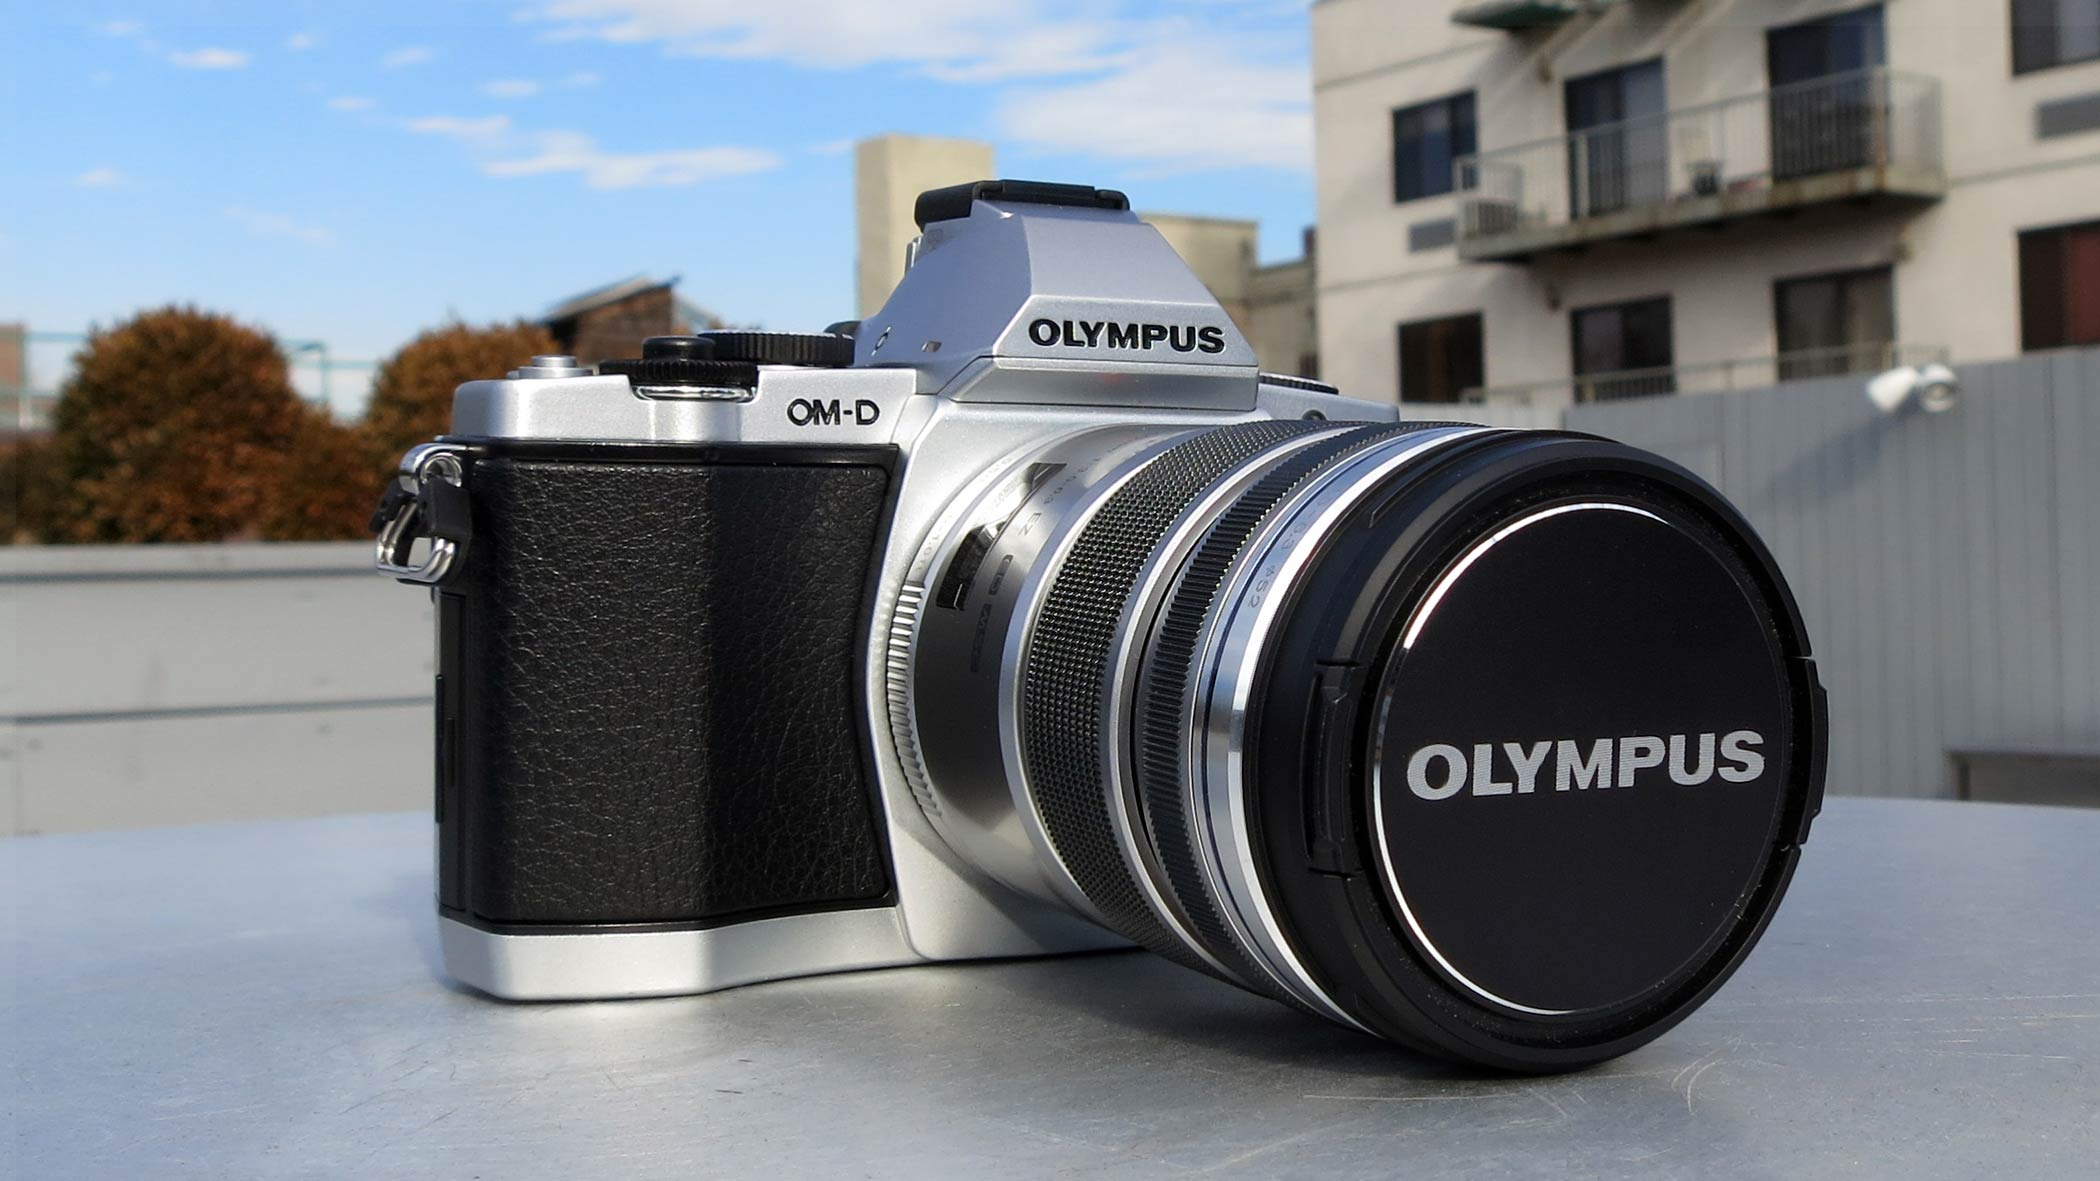 Olympus OM-D E-M5: The First Micro Four Thirds Camera Aimed At